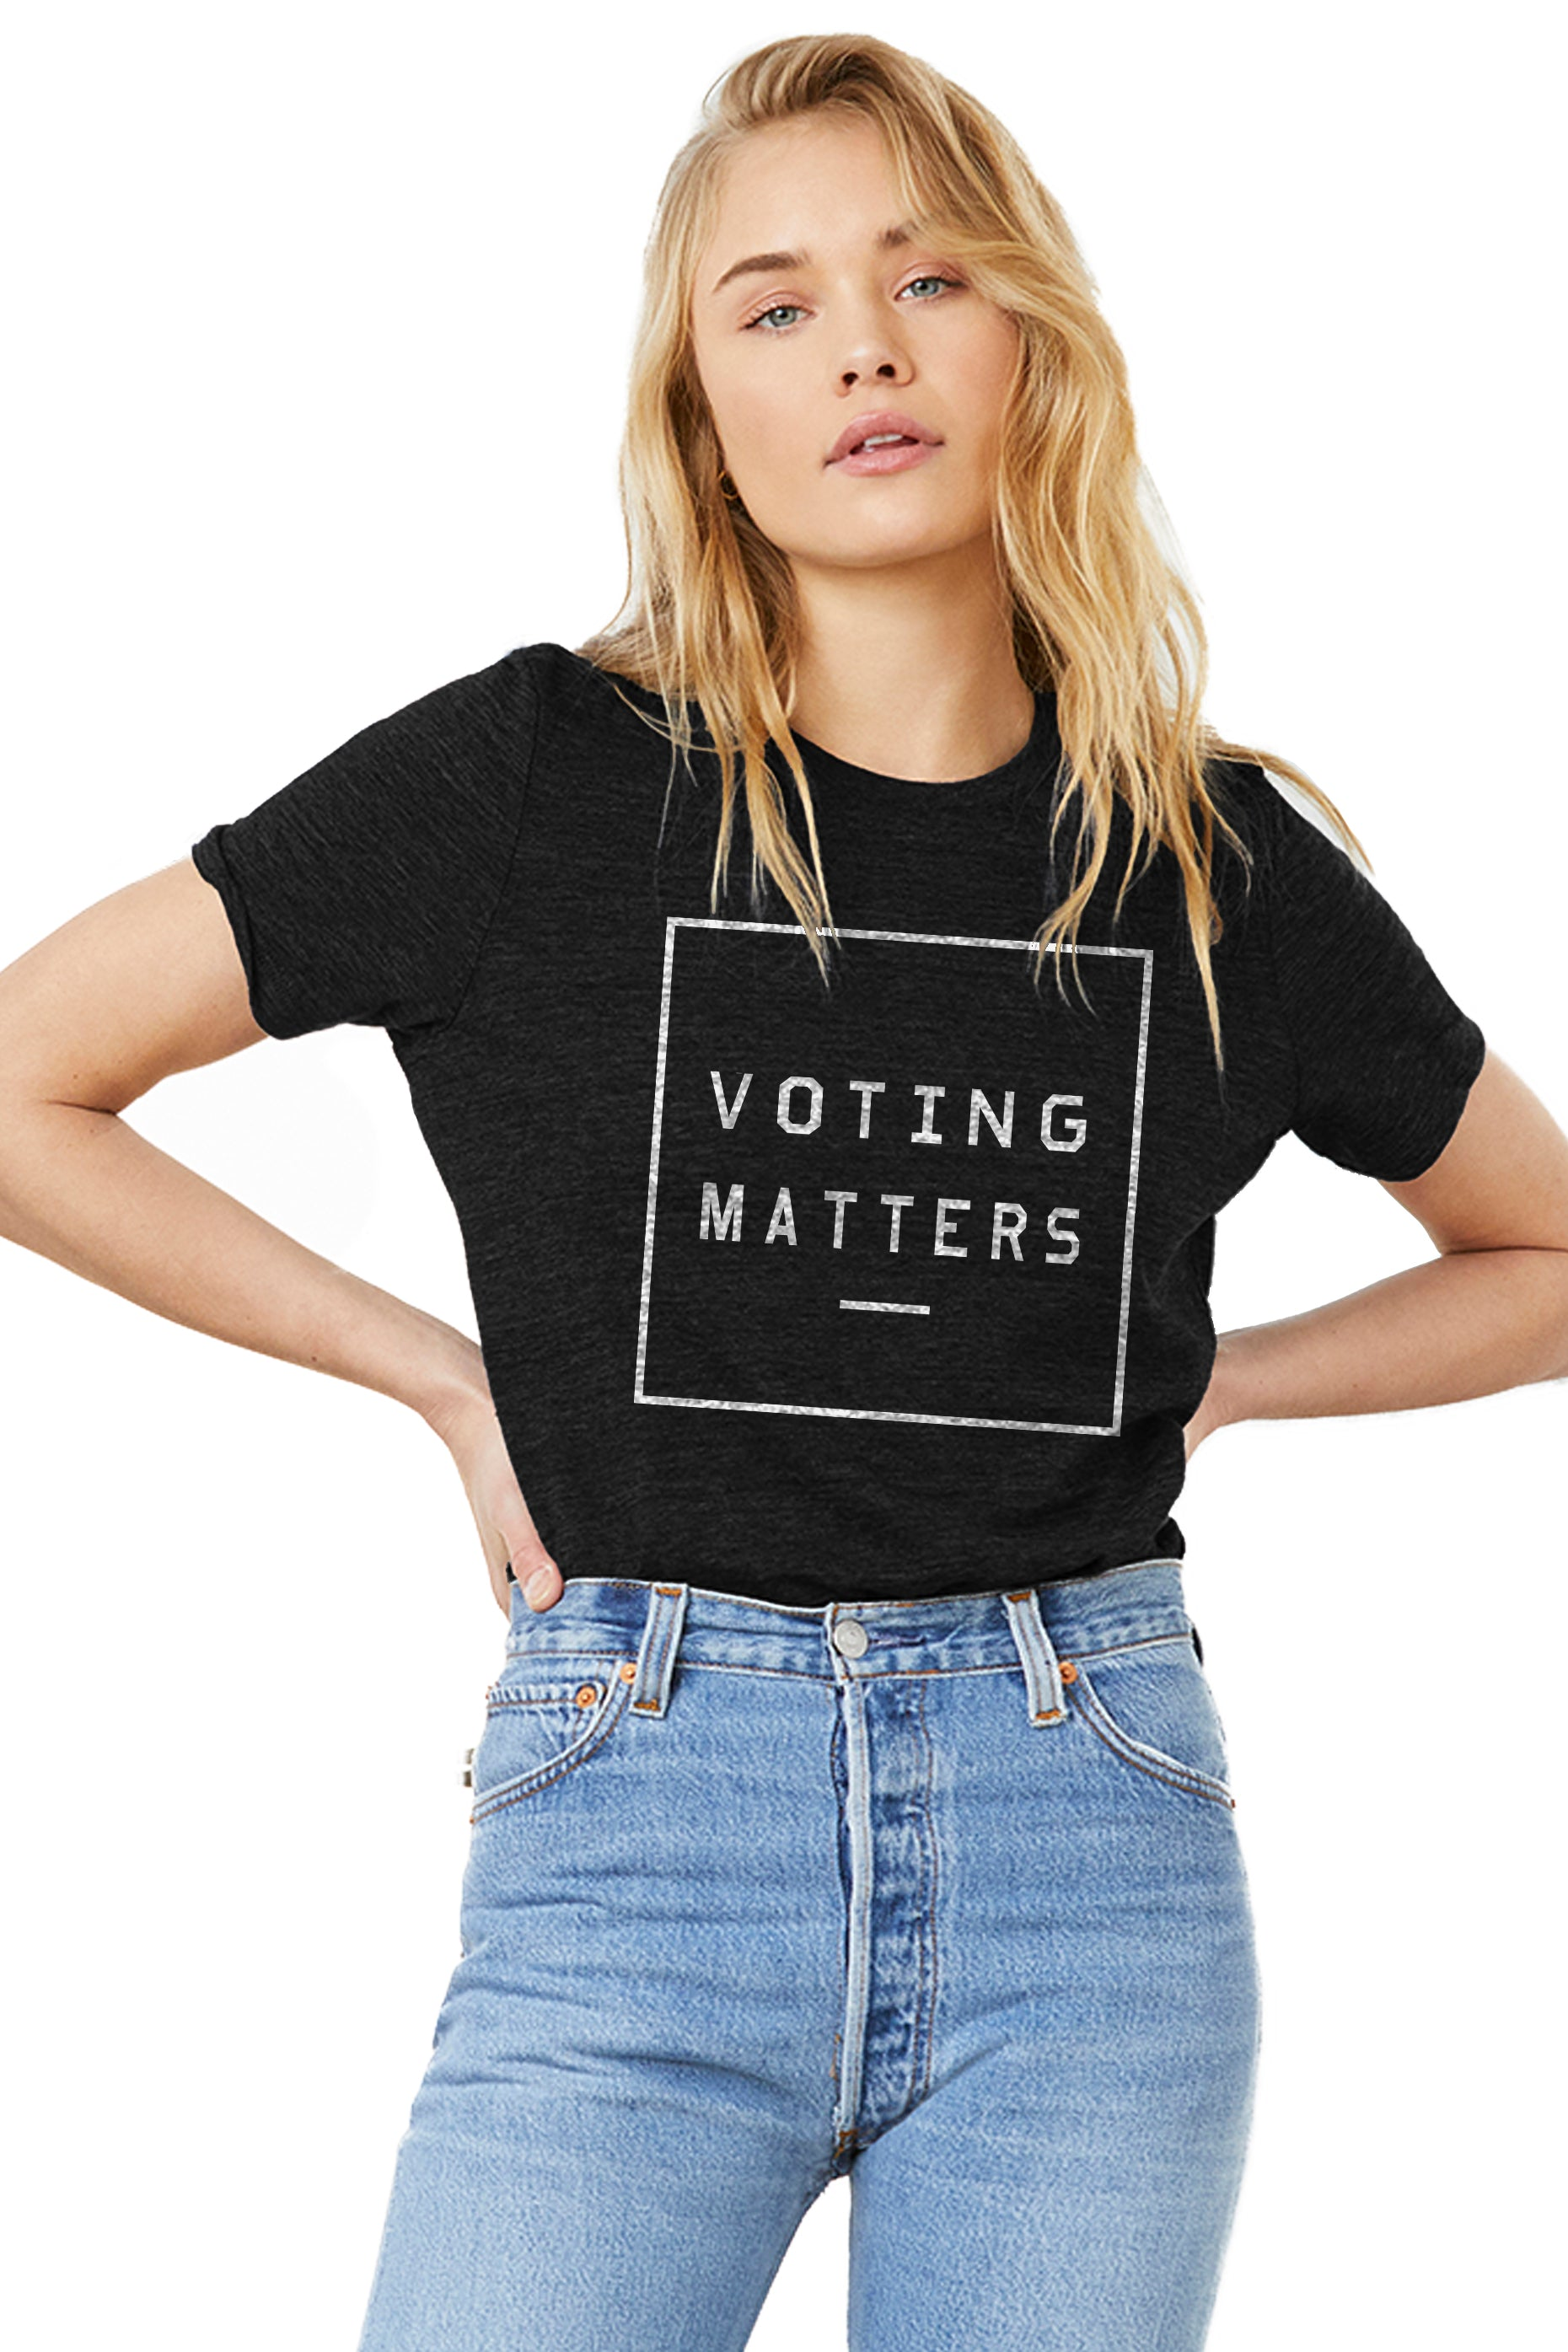 VOTING MATTERS PREMIUM CLASSIC TEE FOR ADULTS